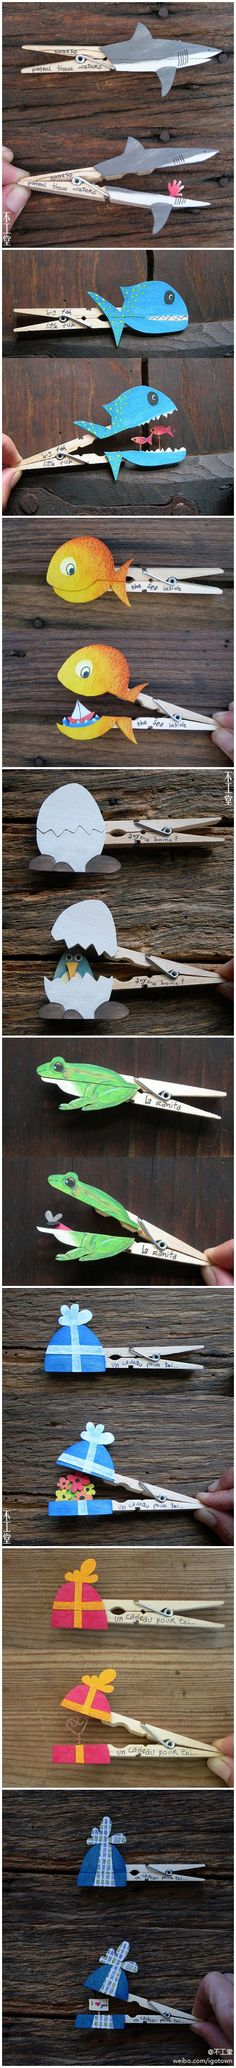 funny craft. So Cute!